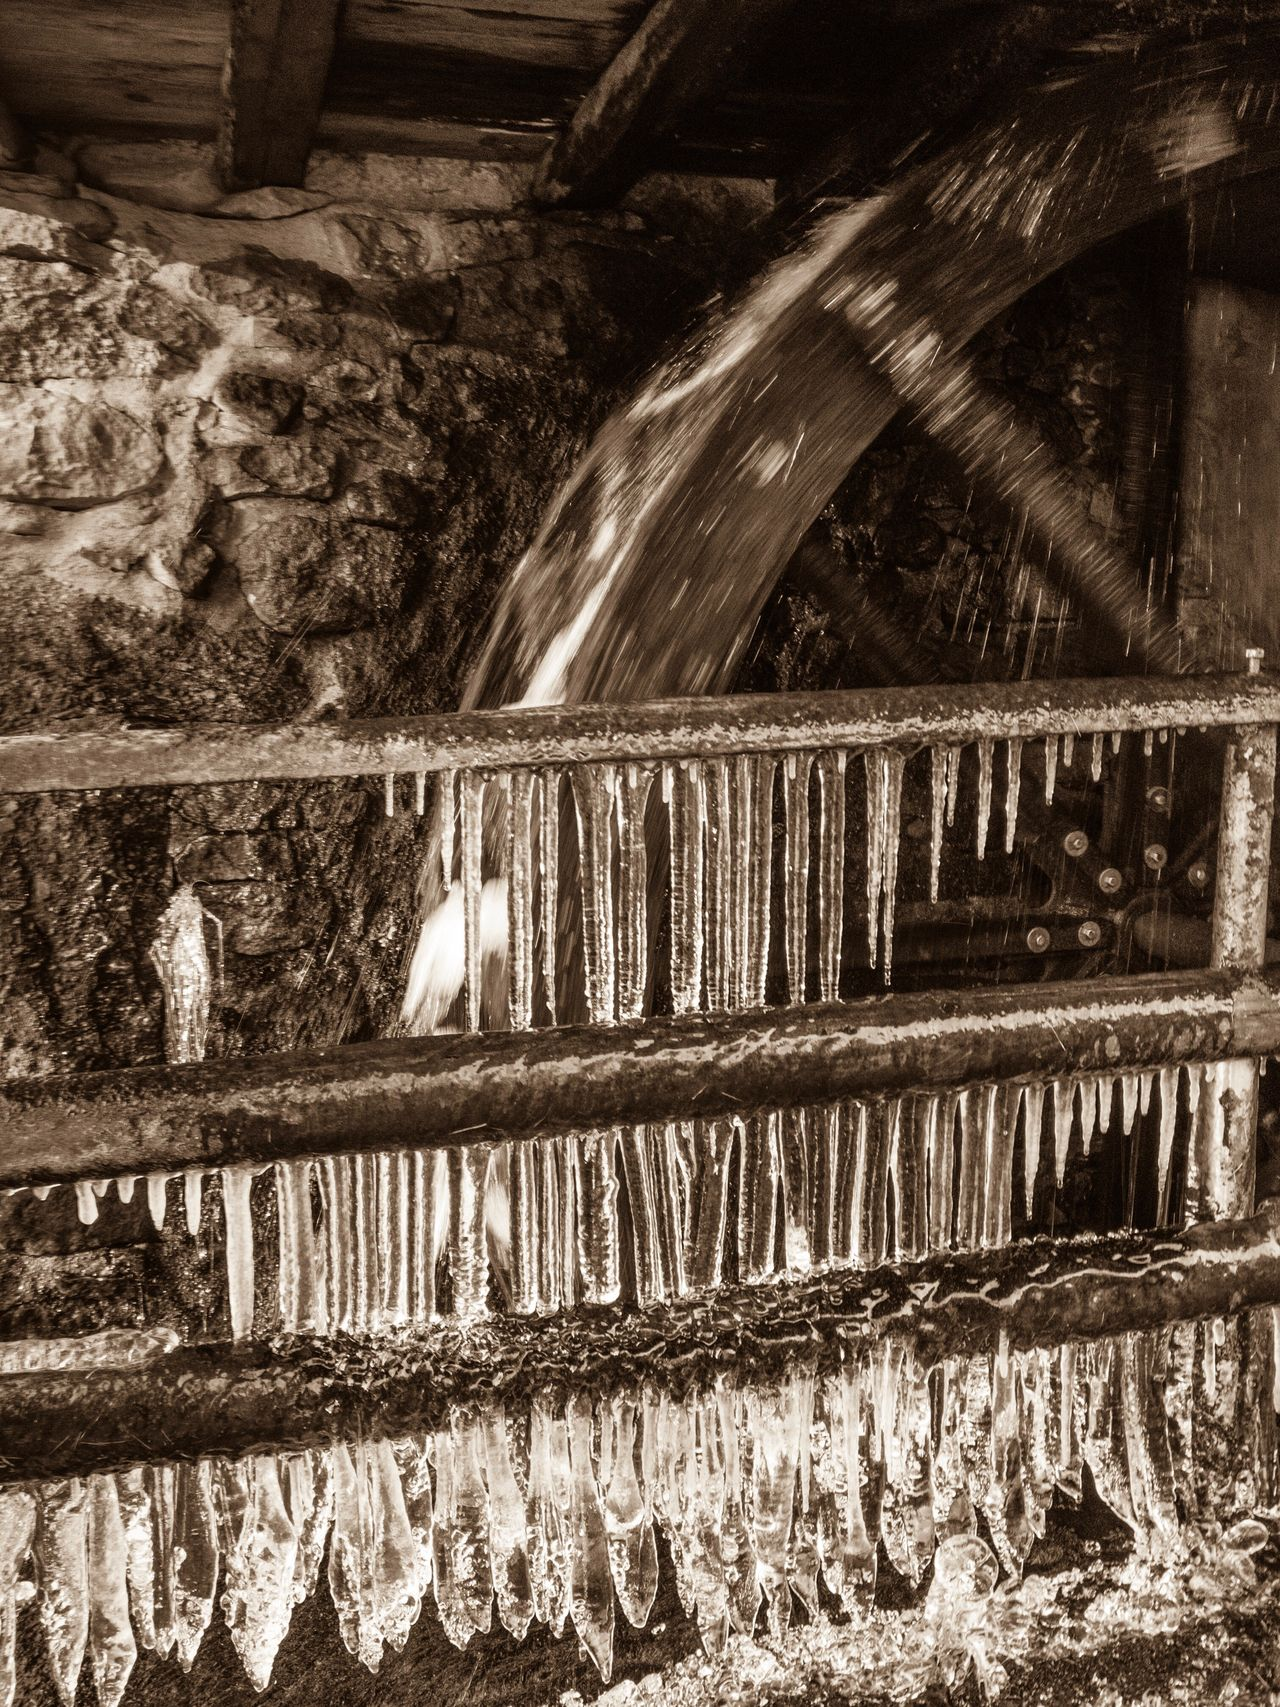 Black Forest Tranquil Scene Architecture Built Structure Hydroelectric Power Wood - Material Rural Scene Village Icicles Water